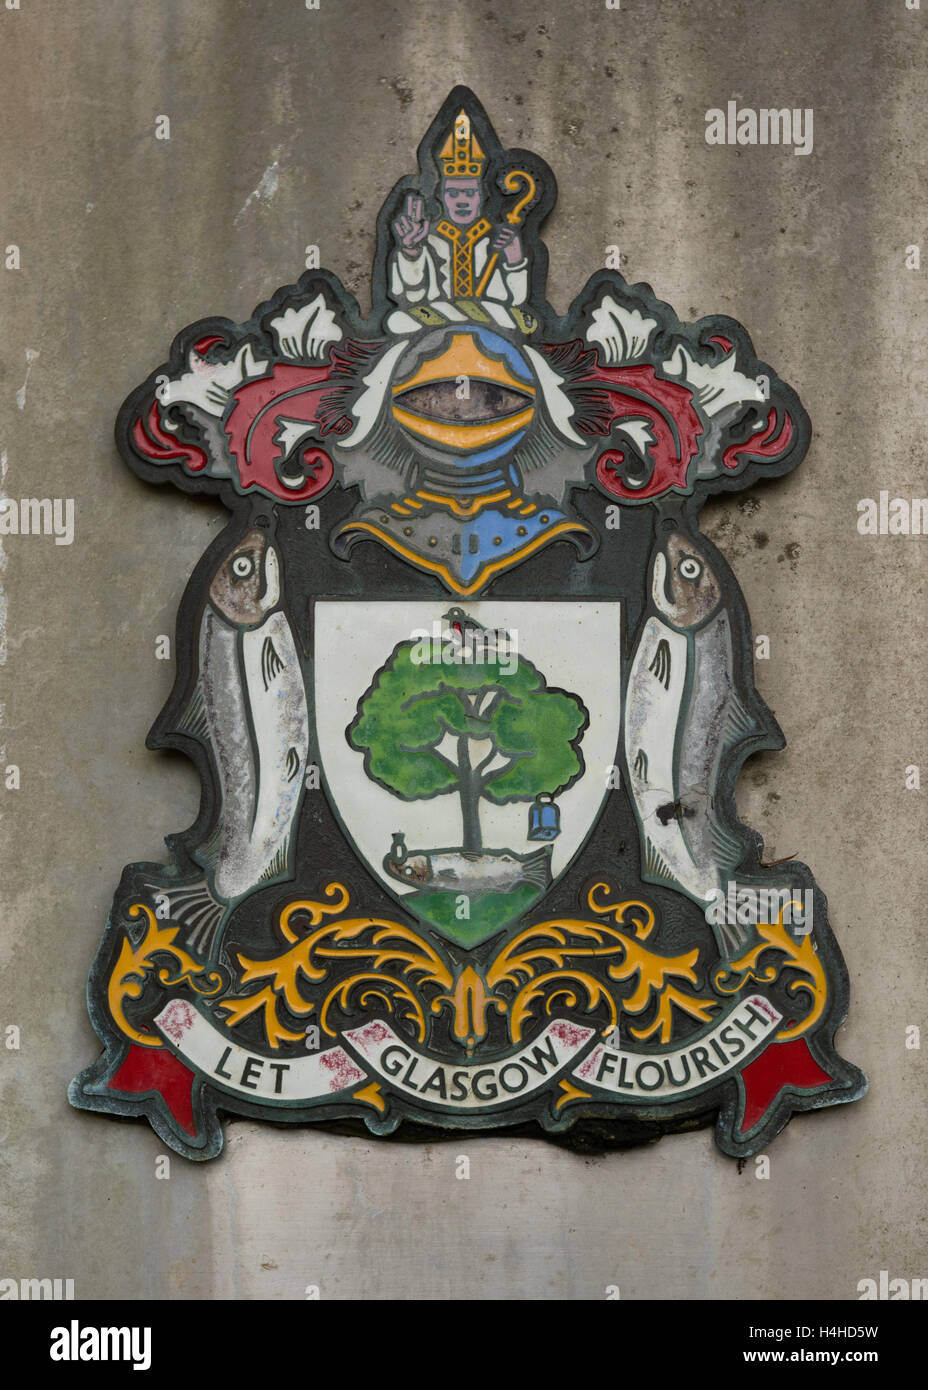 Glasgow Coat of Arms and city motto - 'Let Glasgow flourish' - from Glen Finglas Reservior sign, Trossachs, - Stock Image